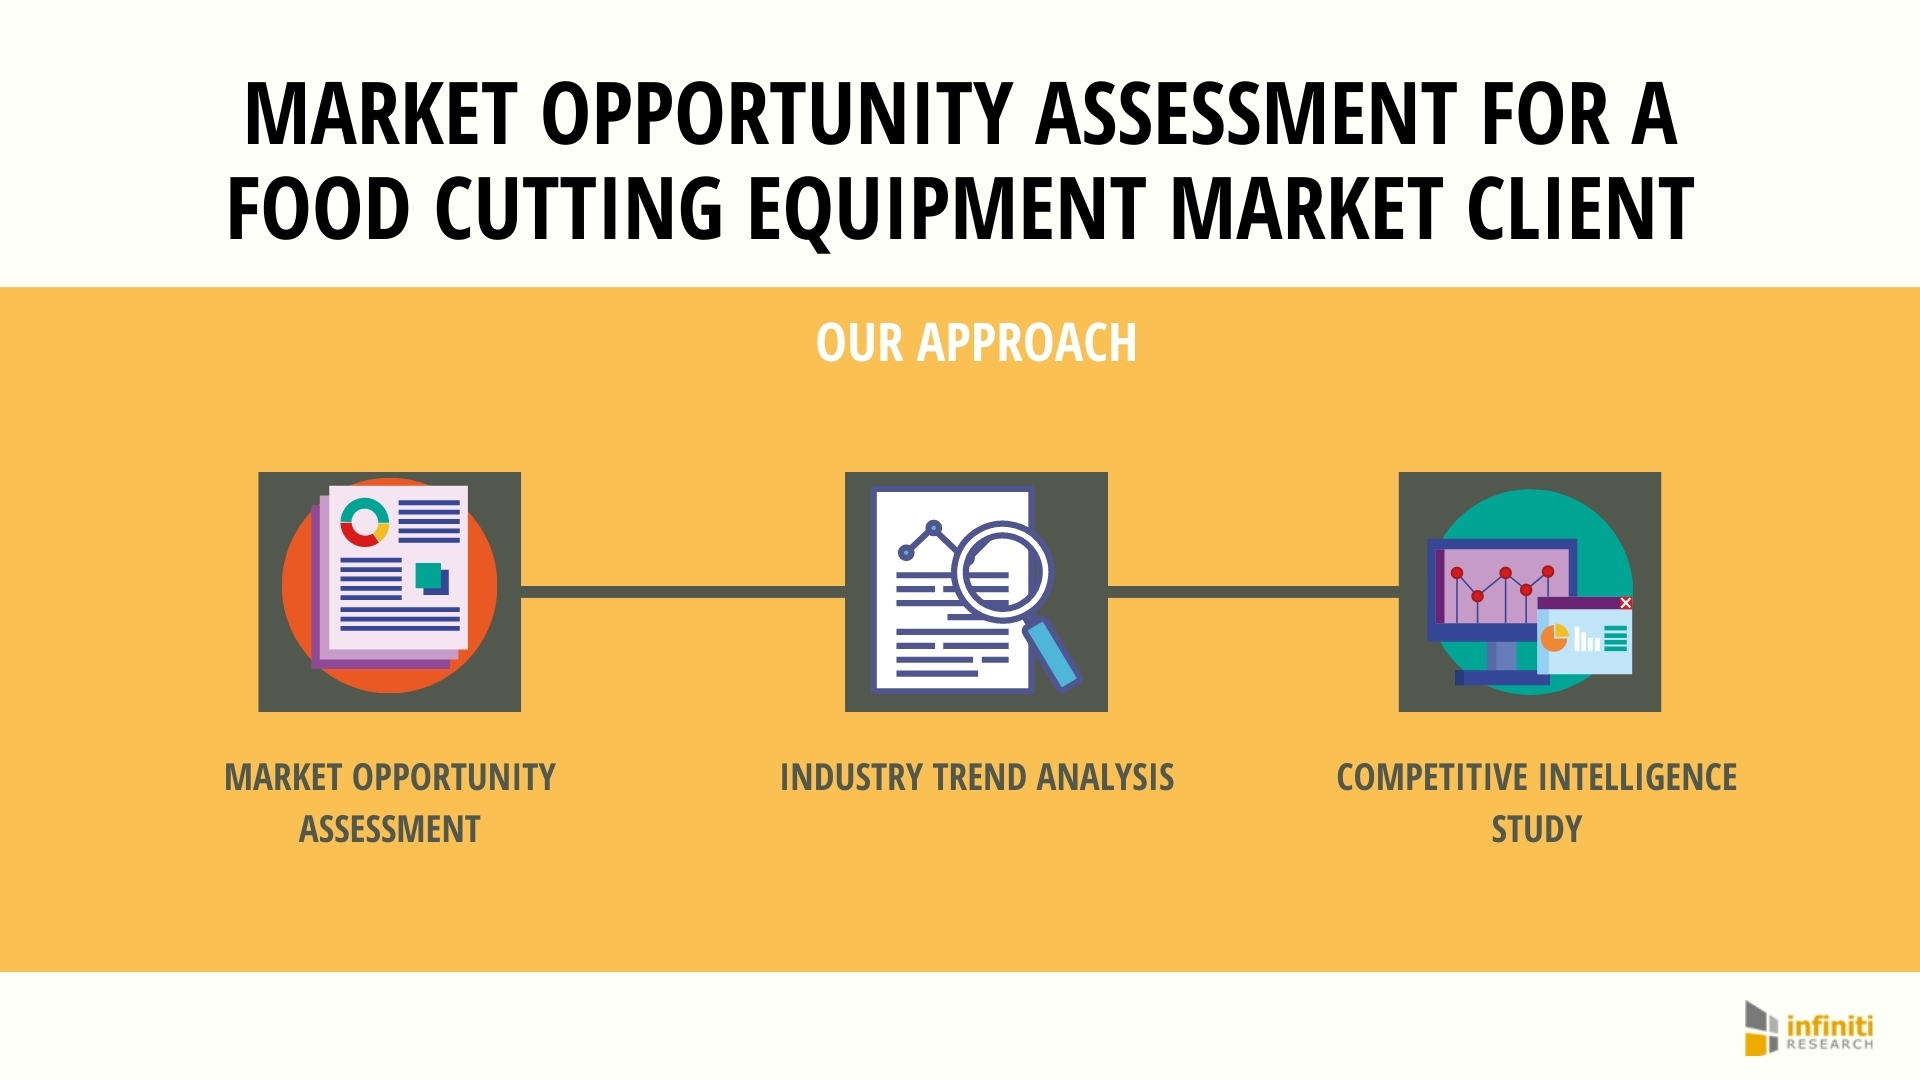 A Food Cutting Equipment Market Client Enhances Market Share And Identifies Key Growth Segments Infiniti S Recent Market Opportunity Assessment Success Story Business Wire